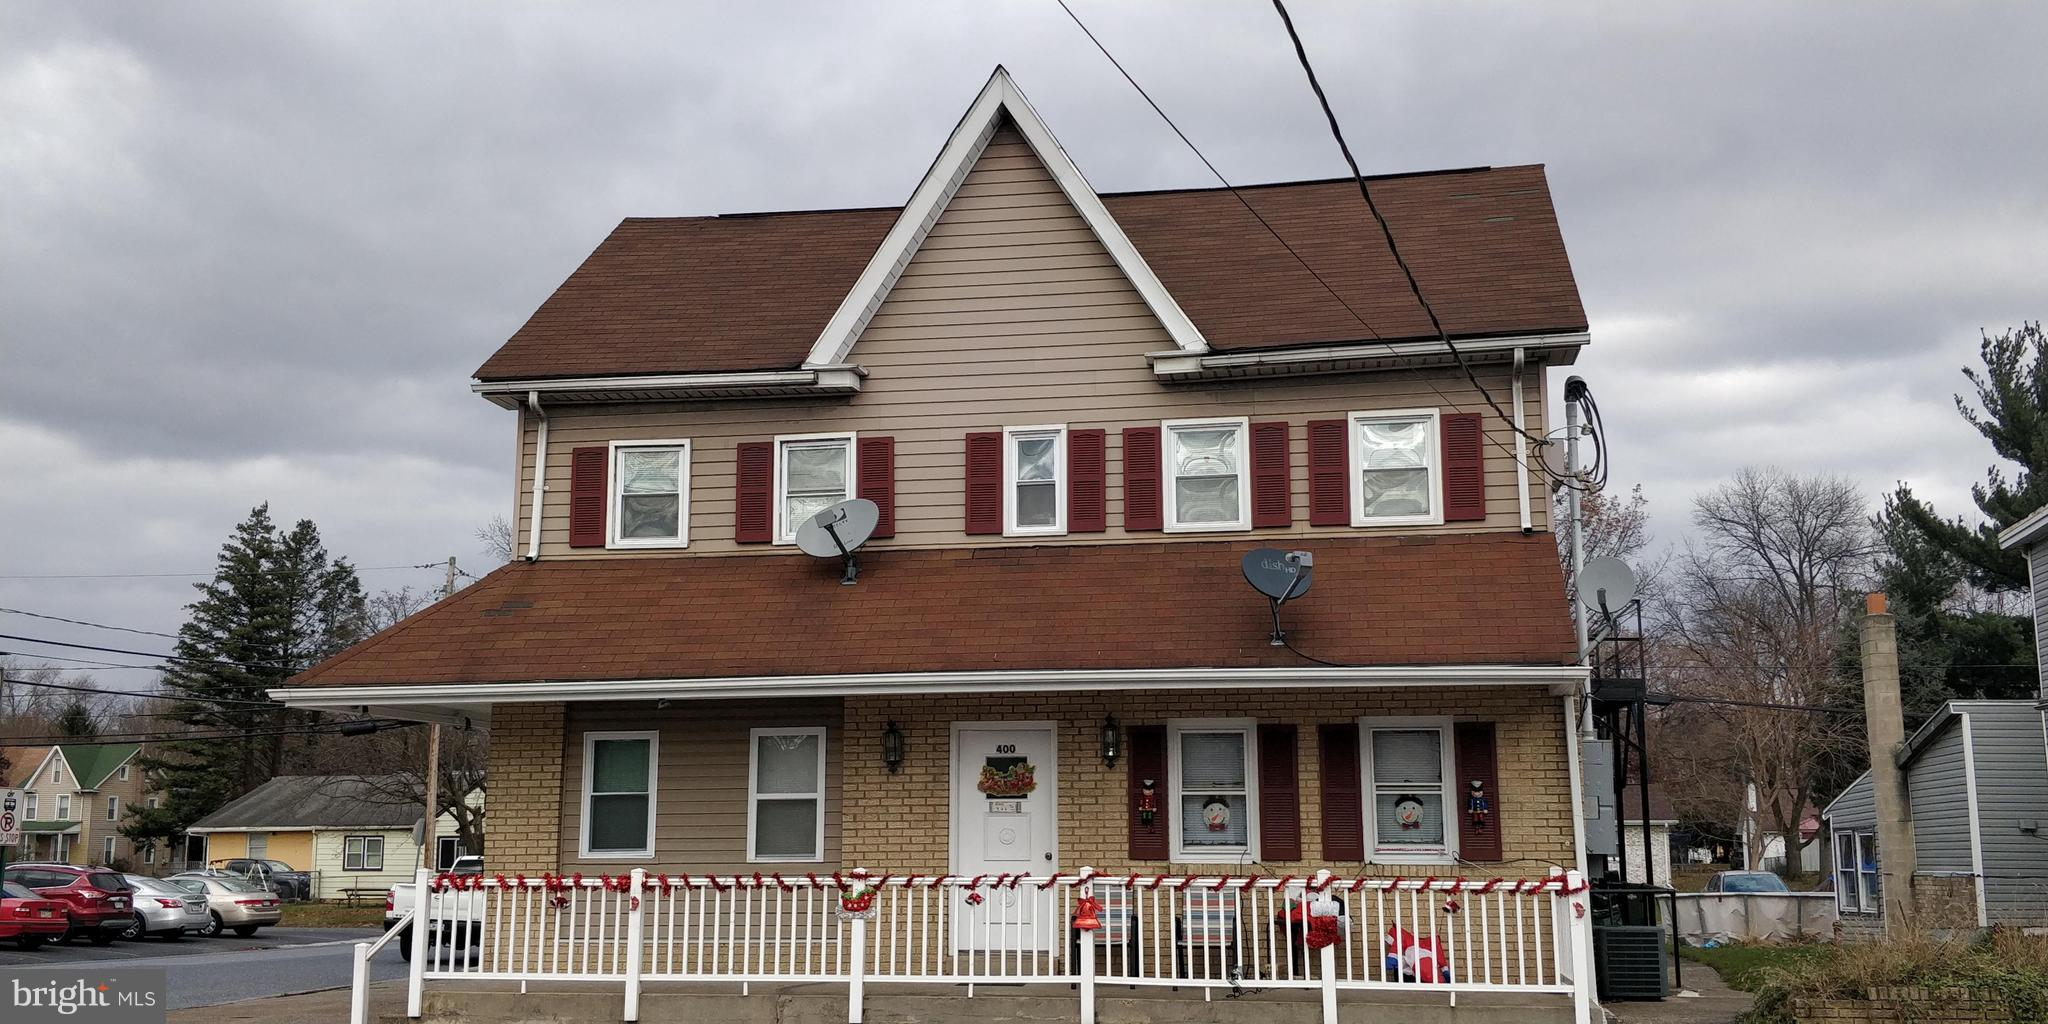 400 2ND STREET, HIGHSPIRE, PA 17034